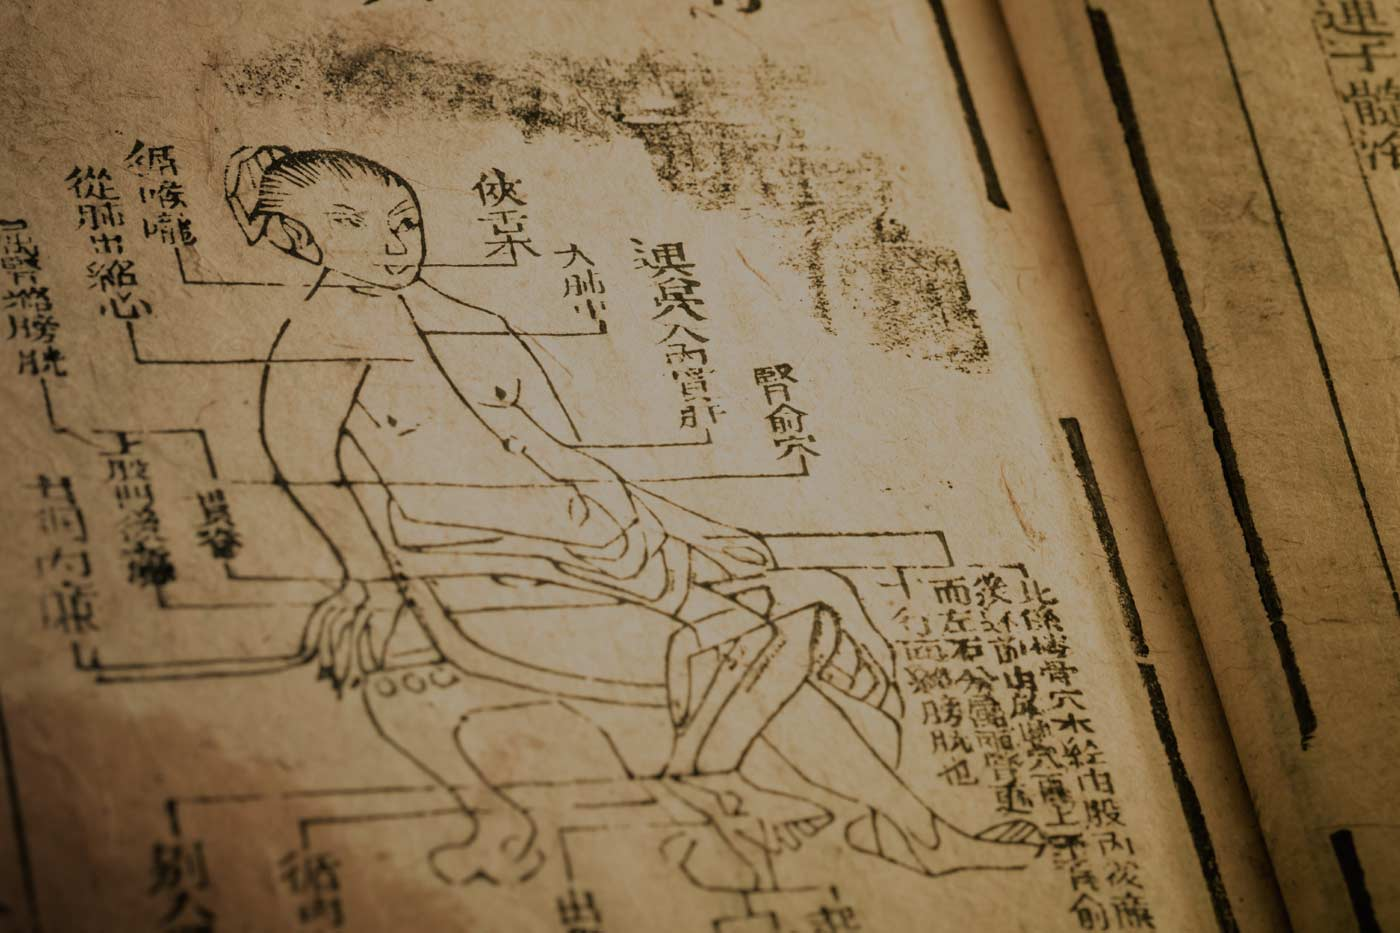 Stroke recovery with Acupuncture